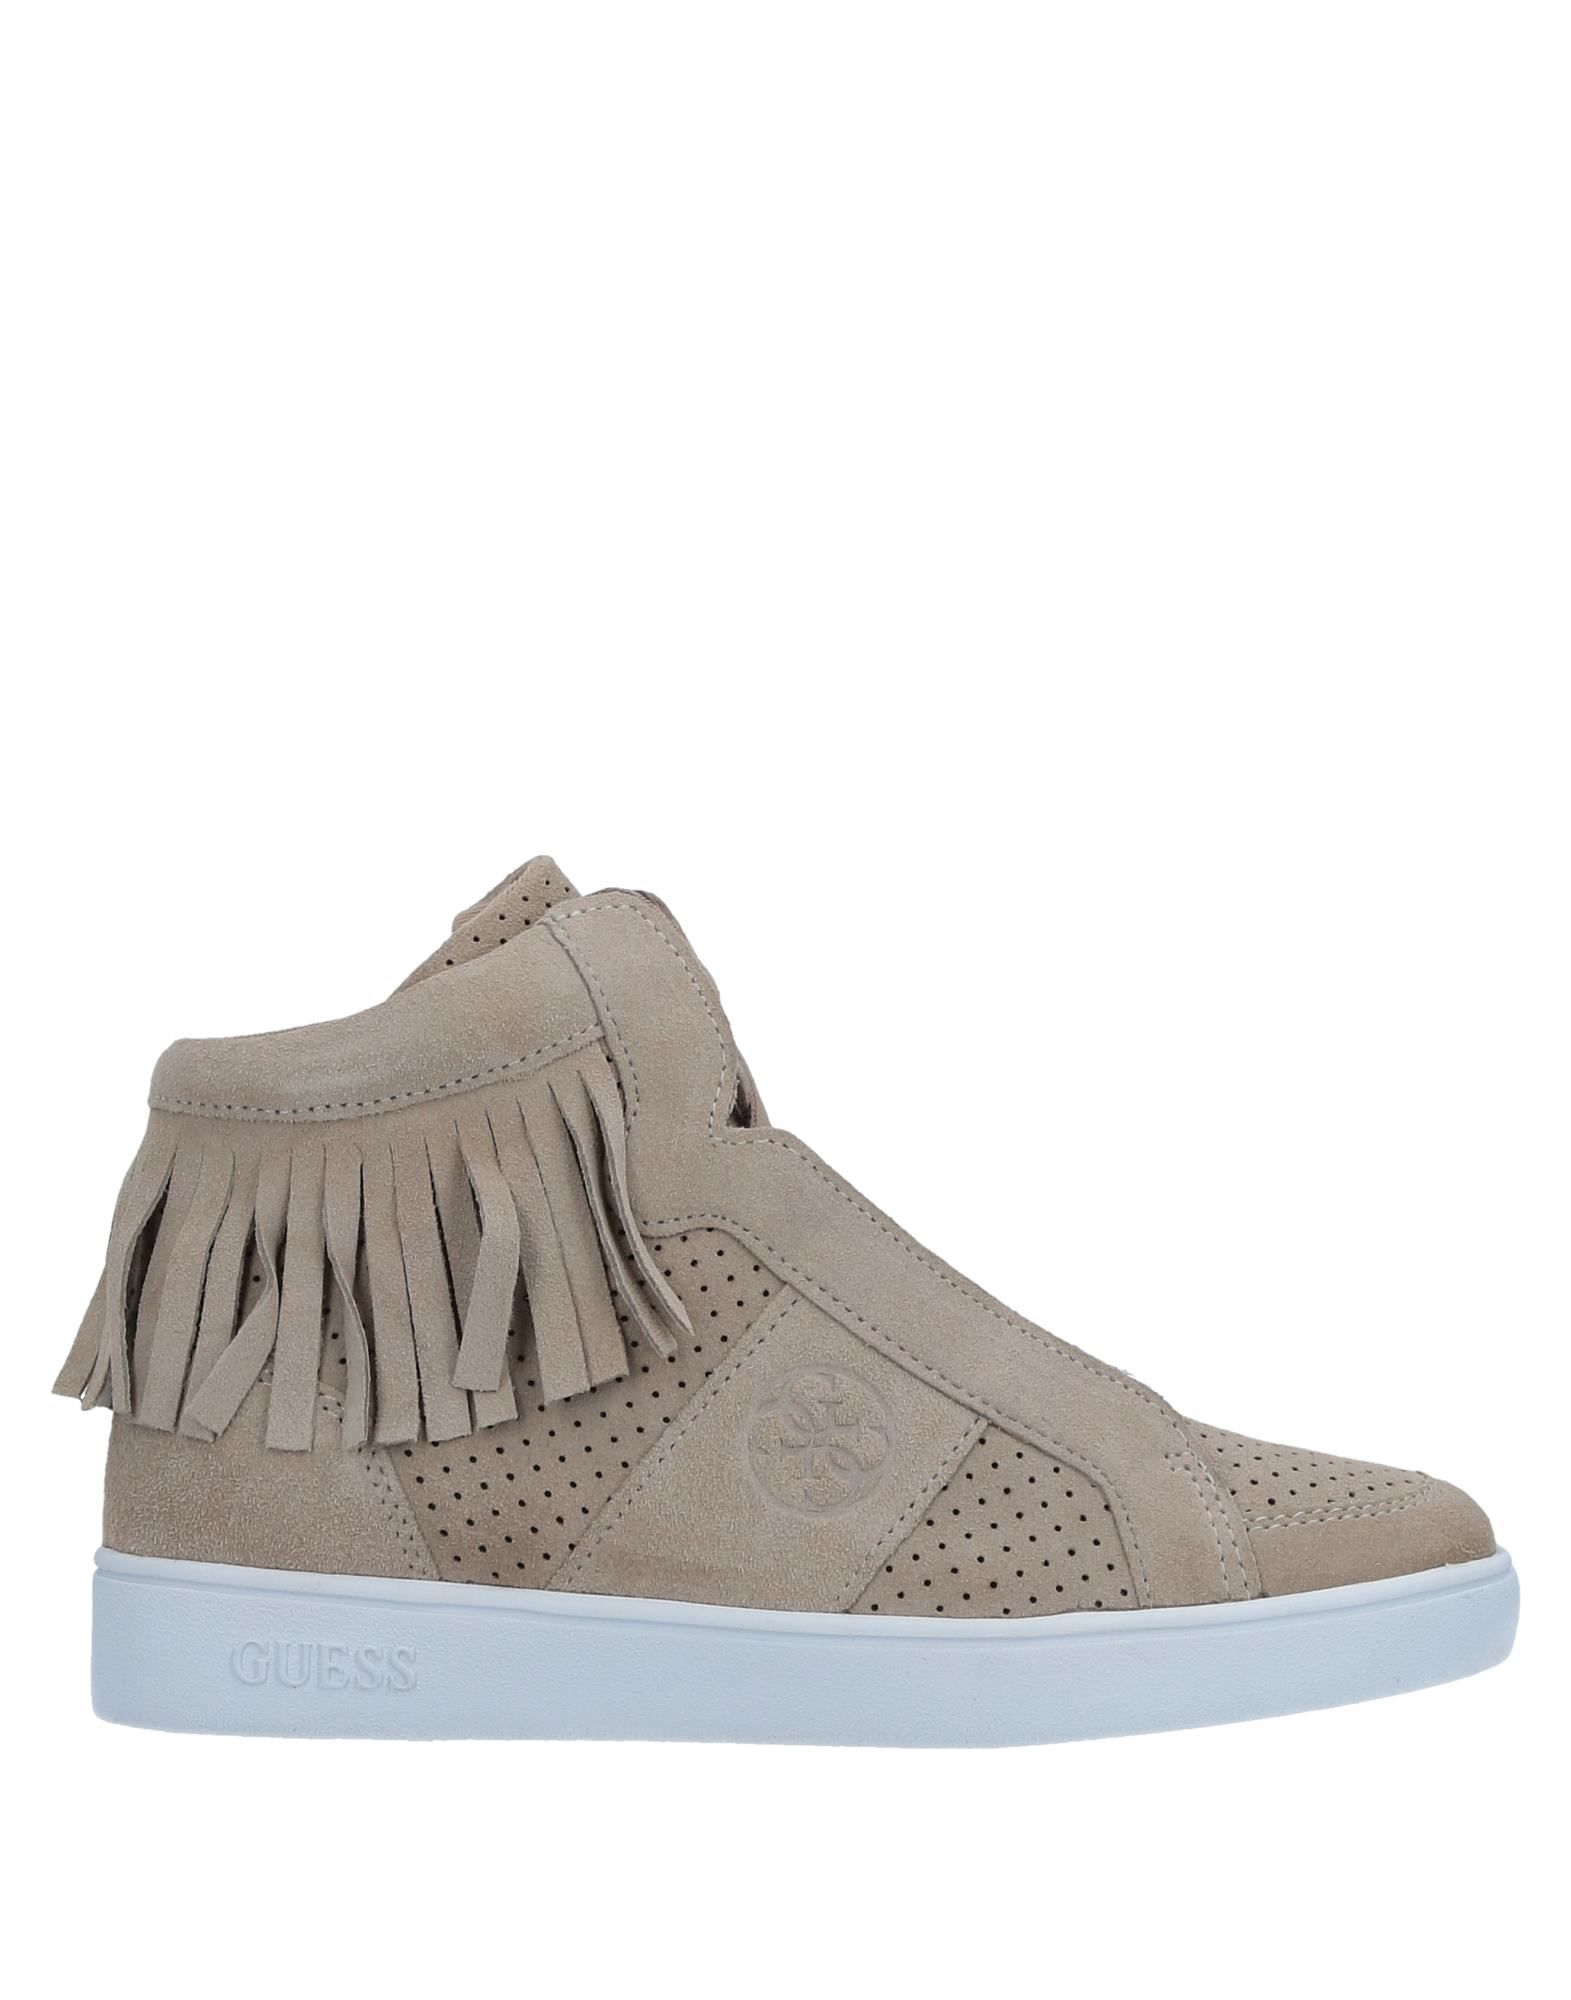 Sneakers Guess Donna - 11519684DS elegante